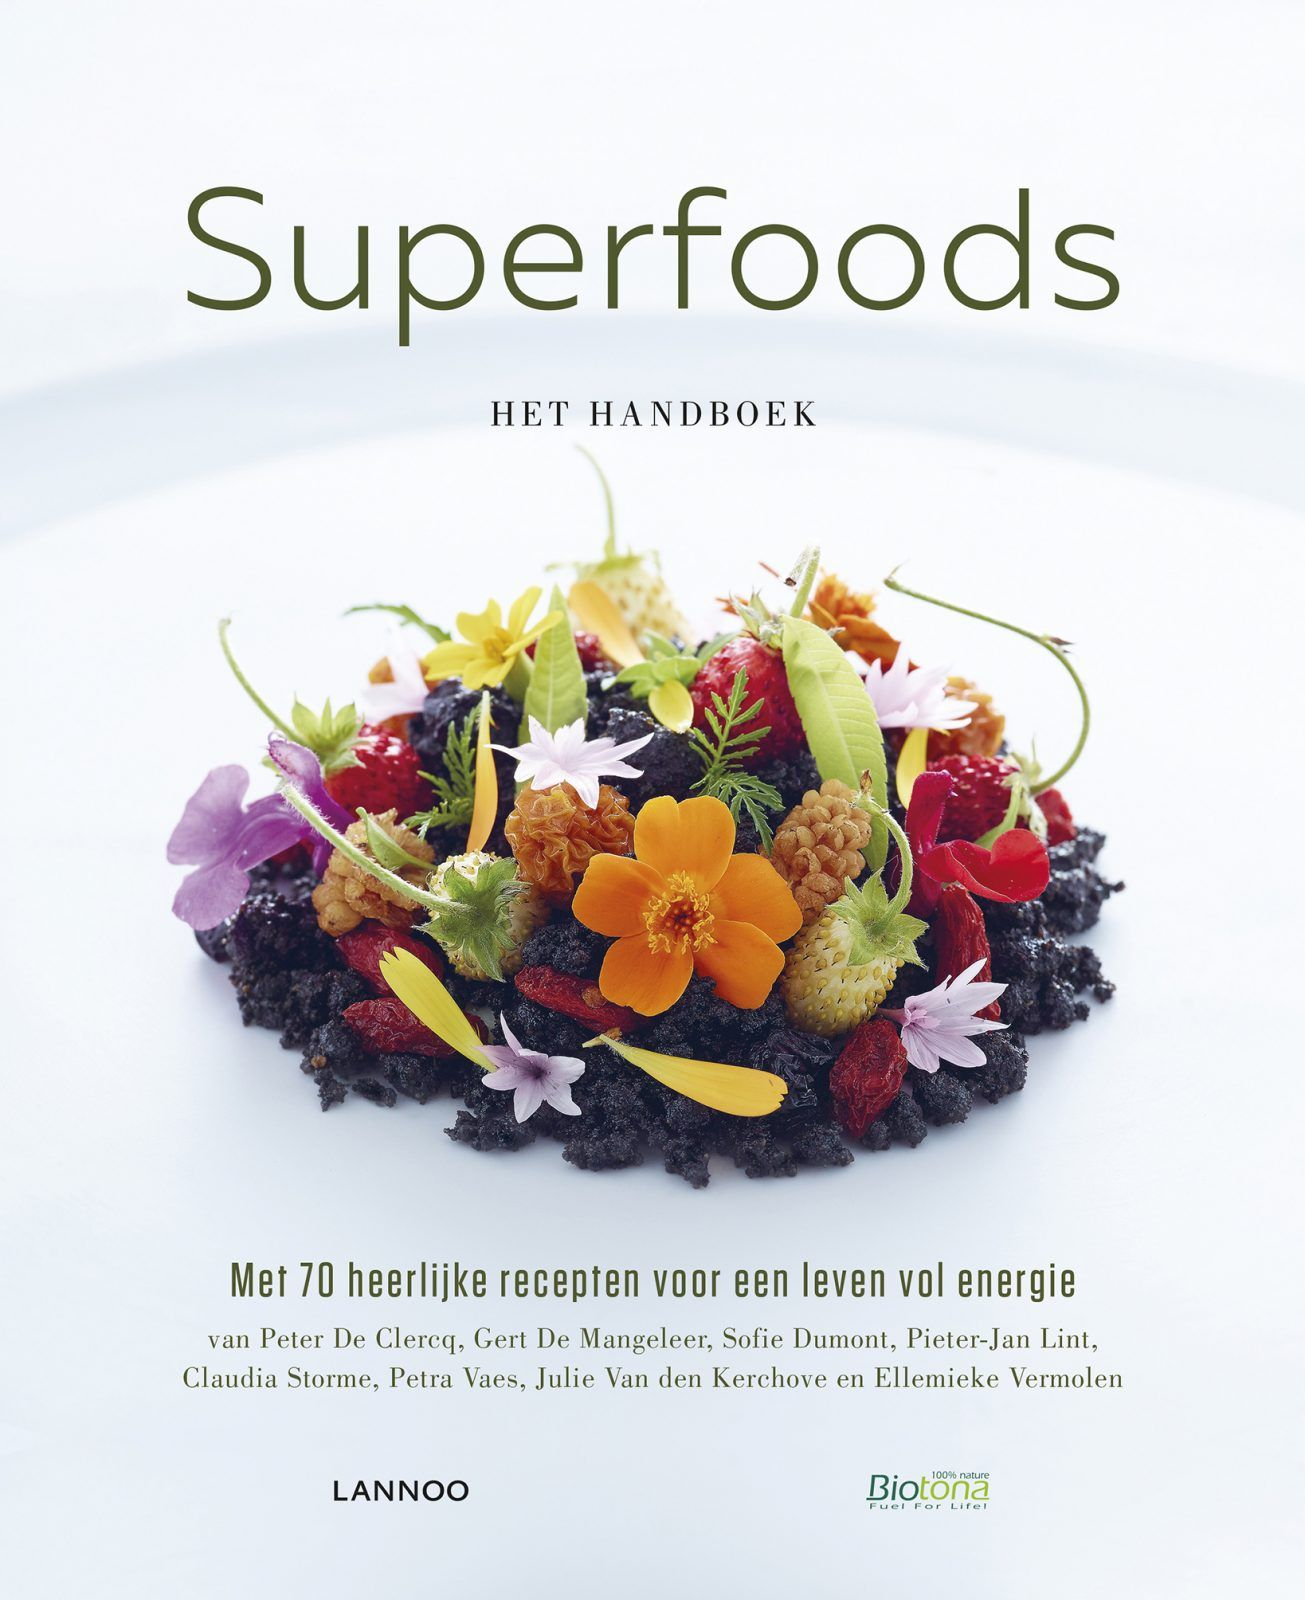 Superfoods kookboek